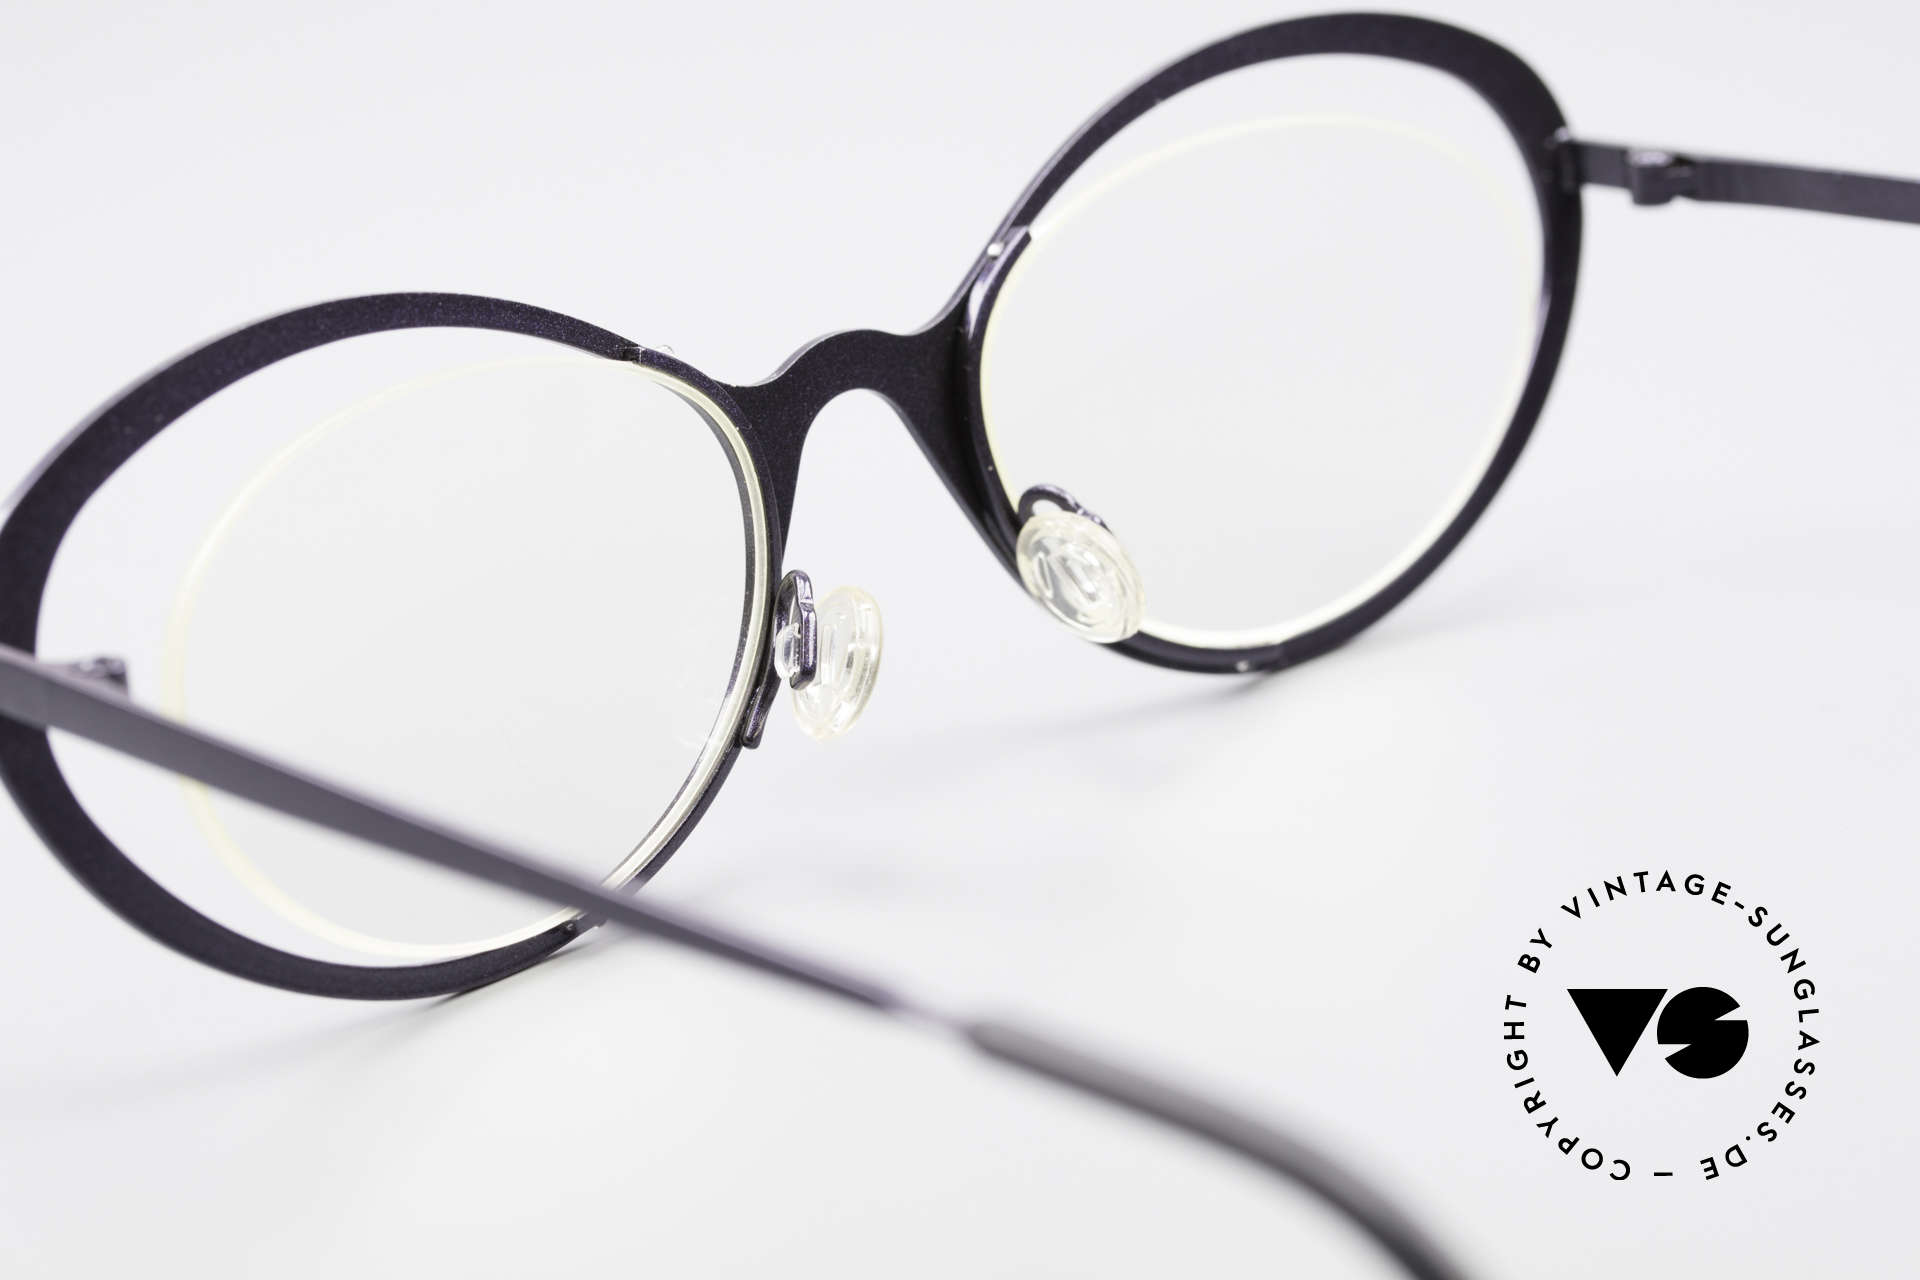 Theo Belgium LuLu Rimless Cateye Glasses 90's, demo lenses can be replaced with lenses of any kind, Made for Women